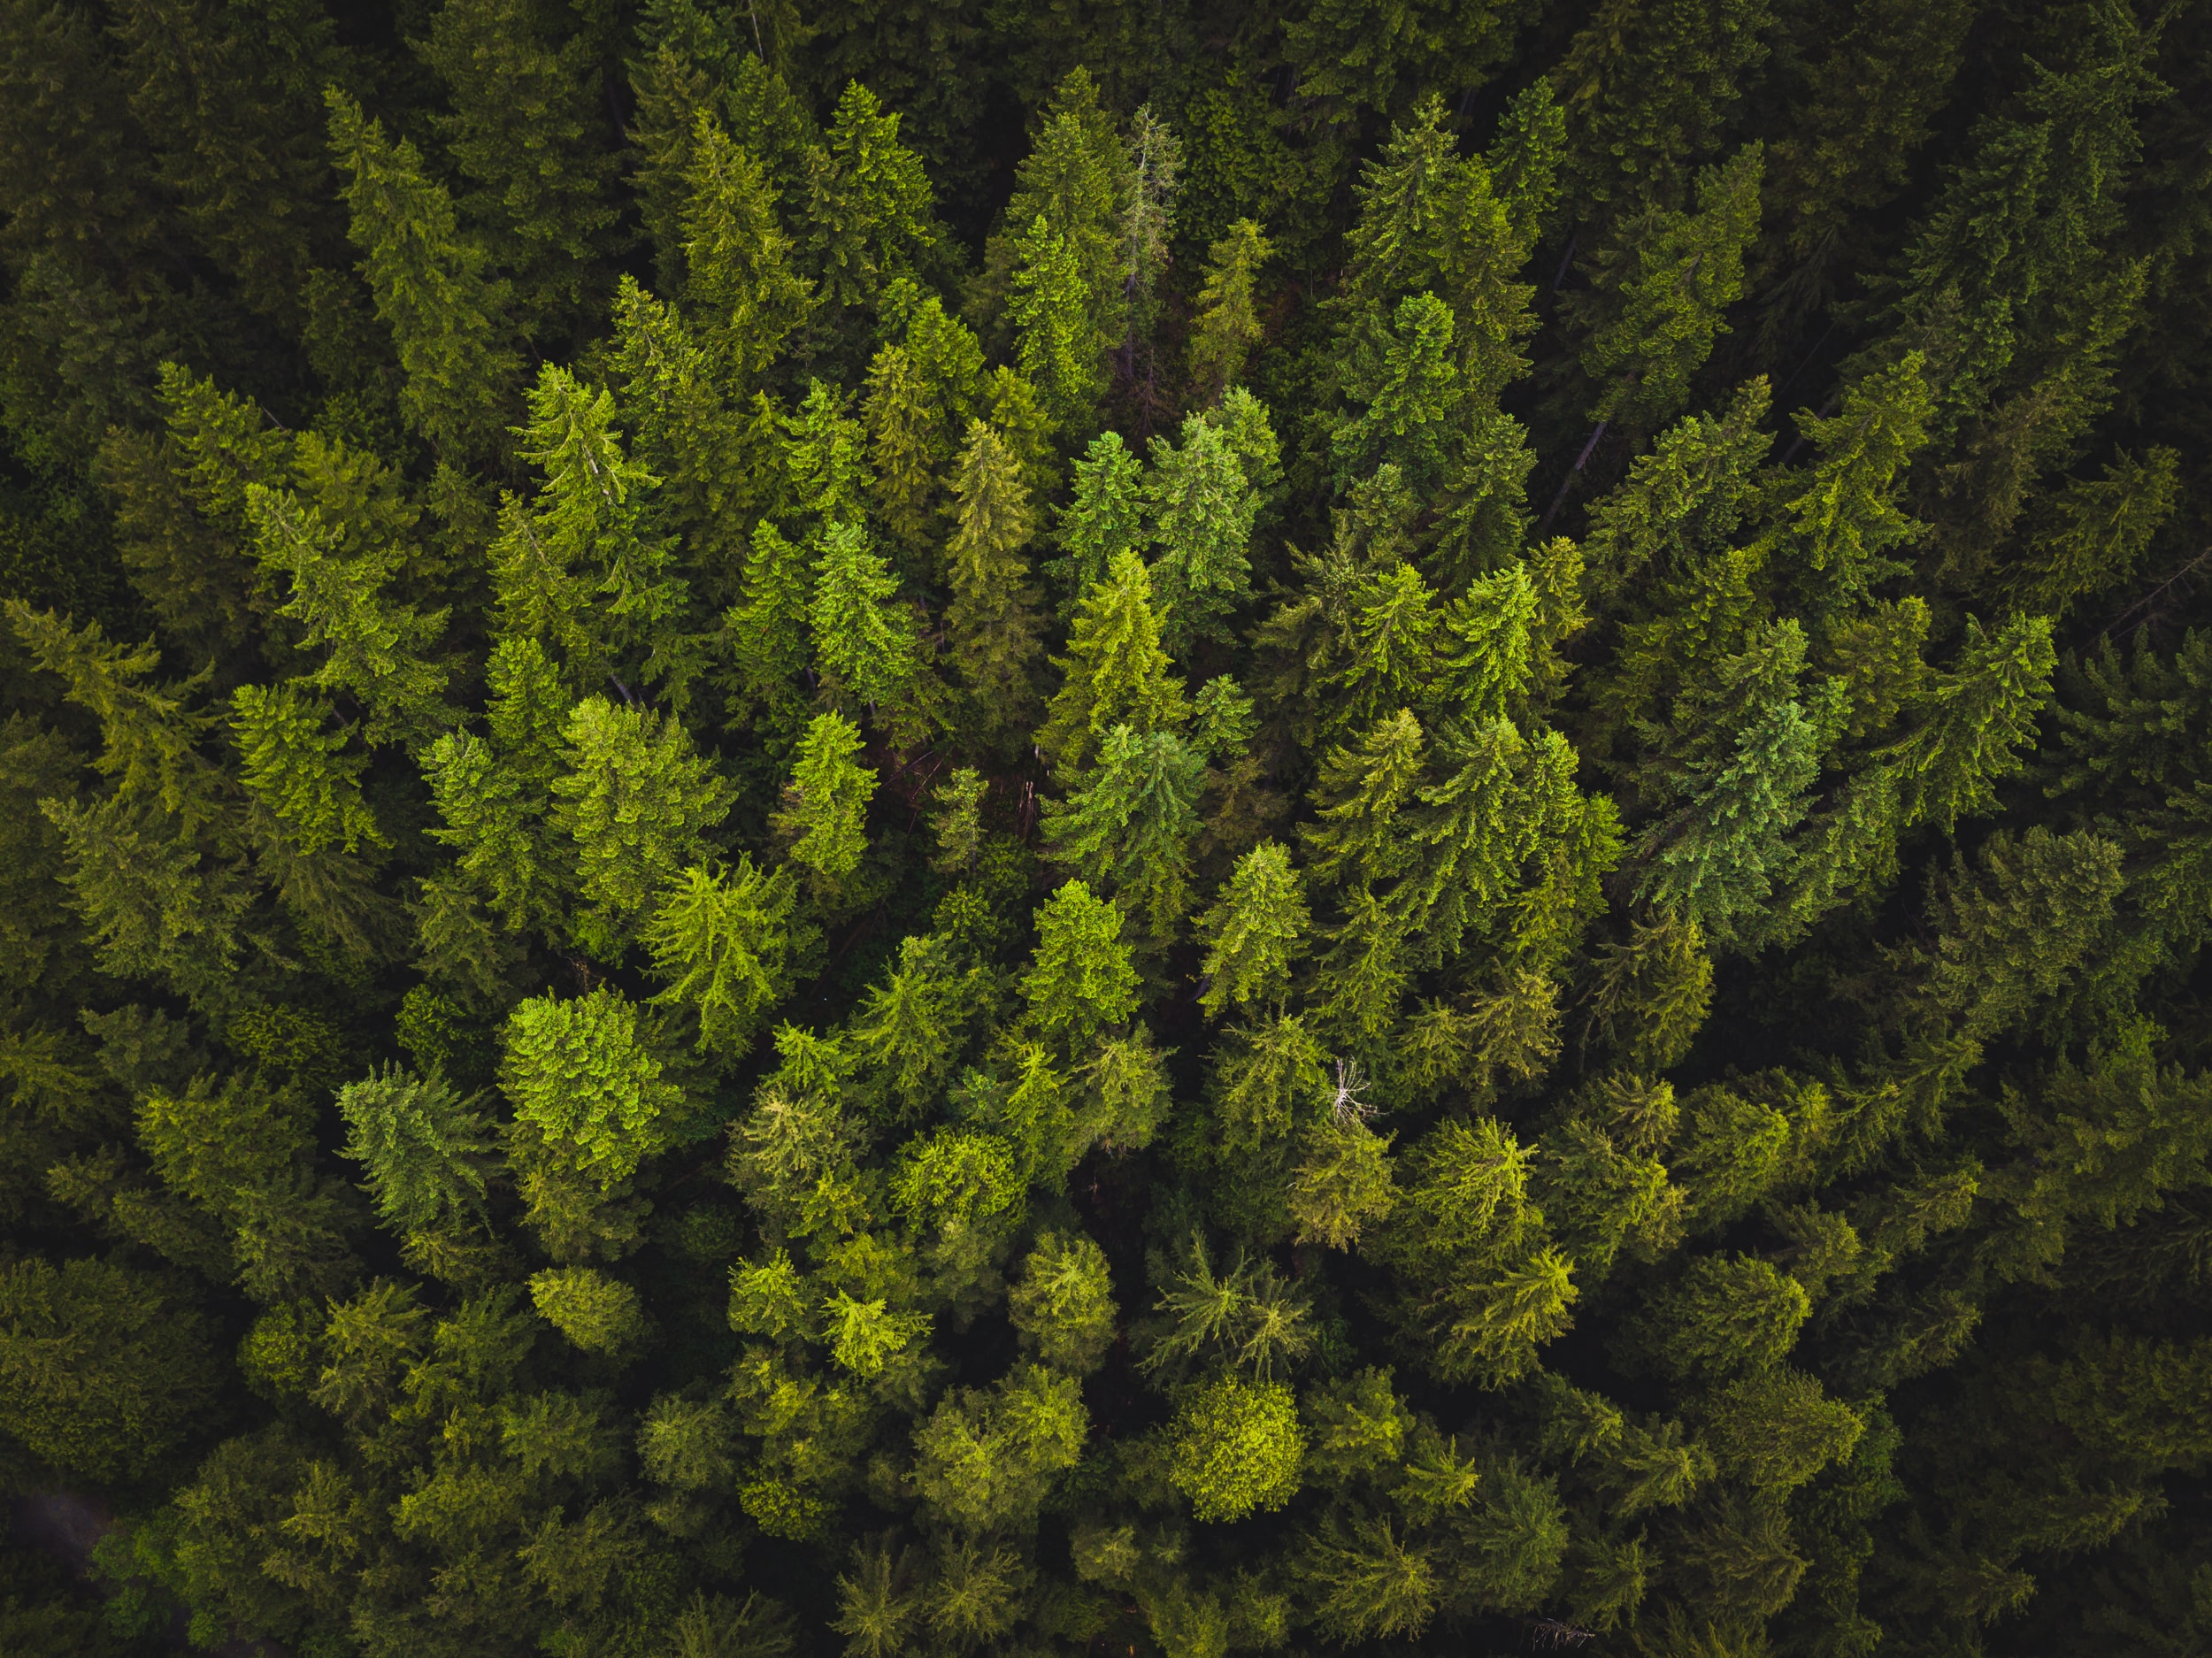 A drone shot of a green forest